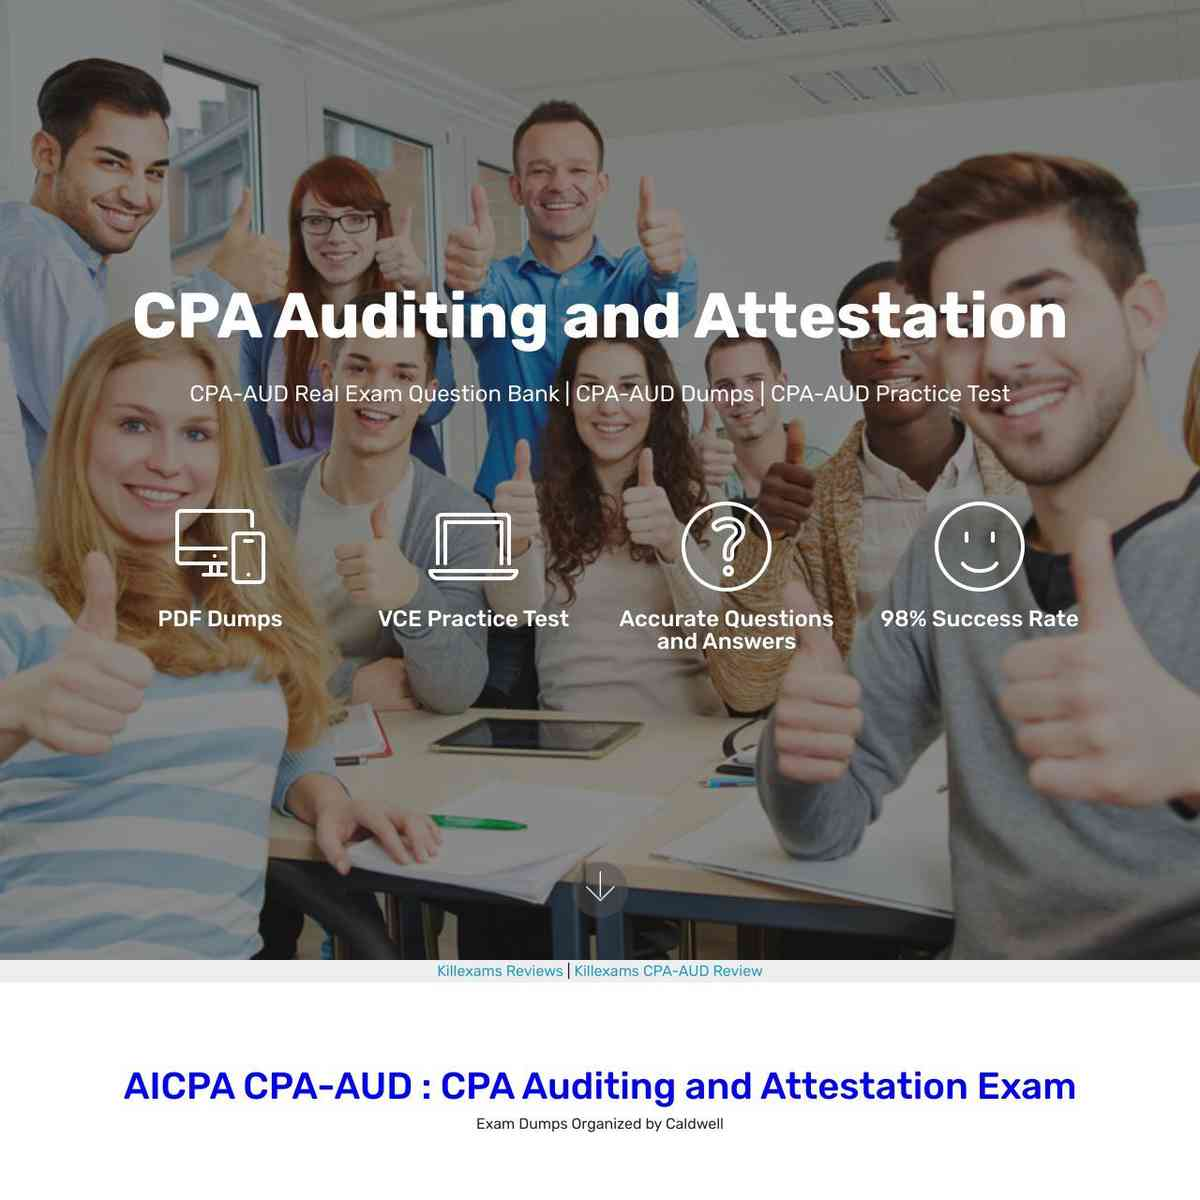 If you memorize these CPA-AUD Exam dumps, you will get full marks.